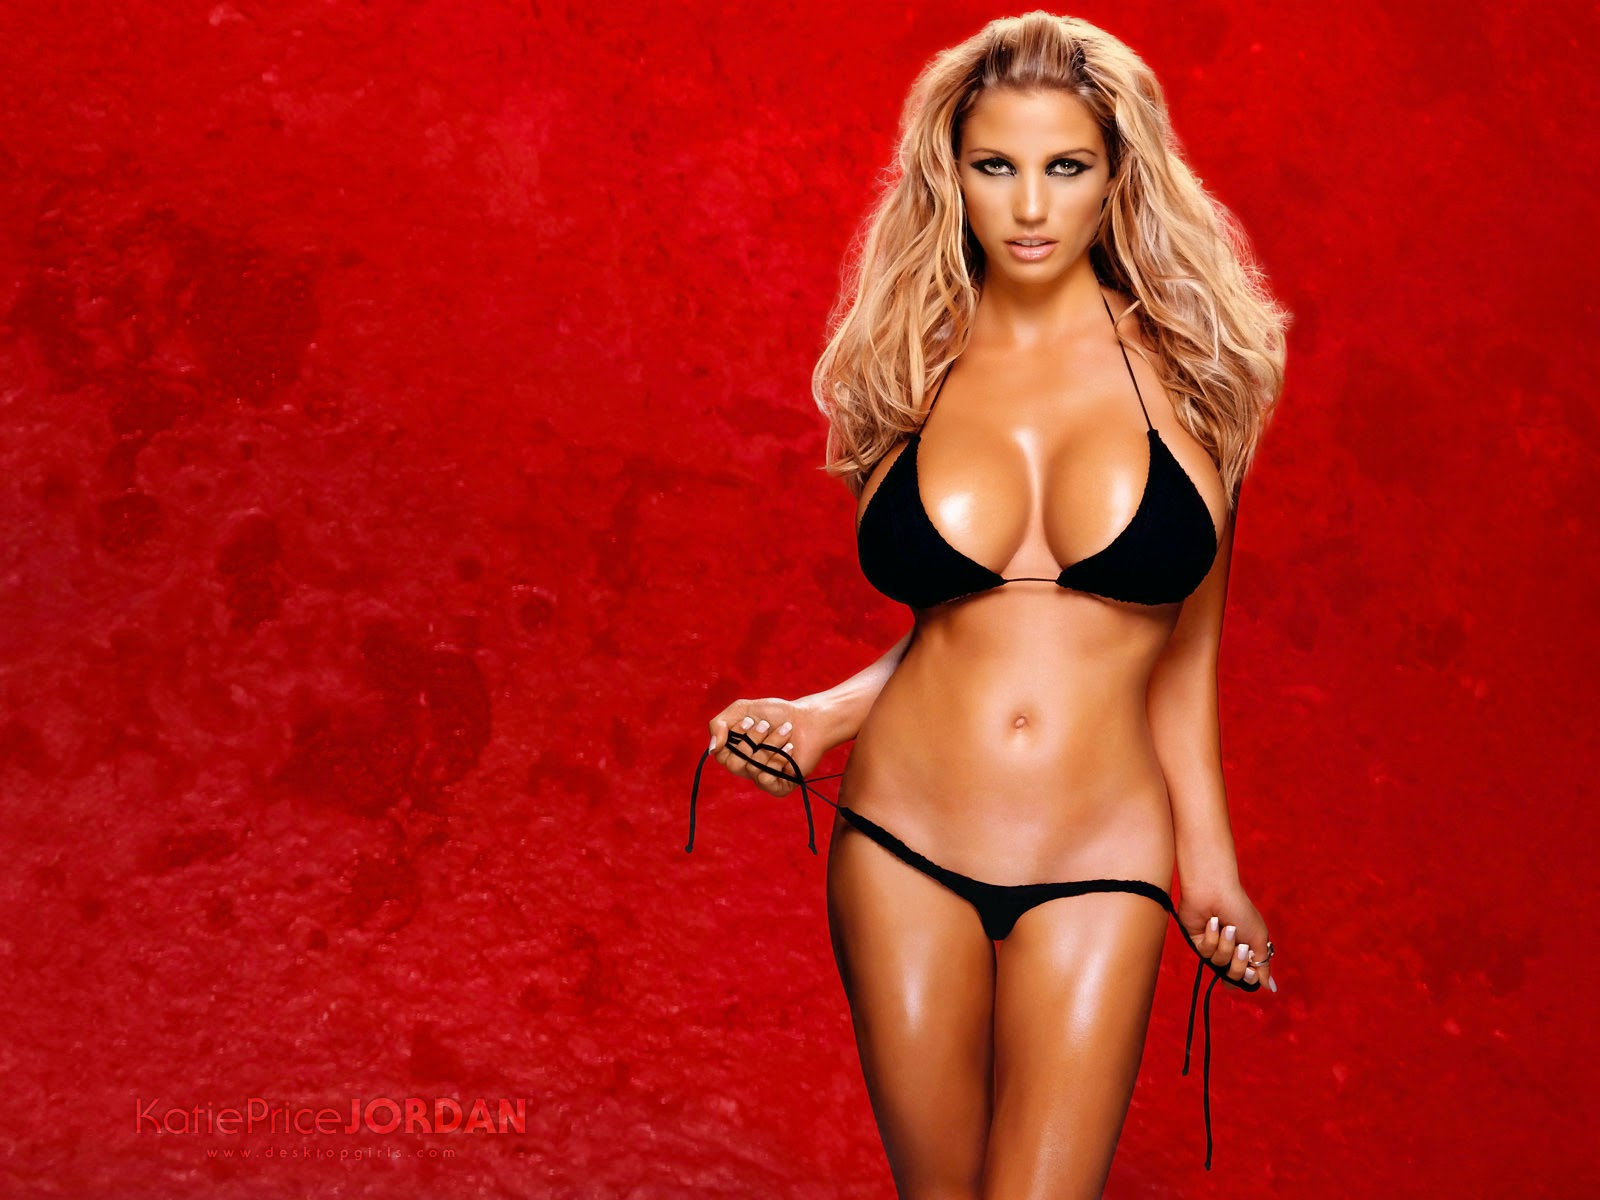 image Shannon tweed sexual response